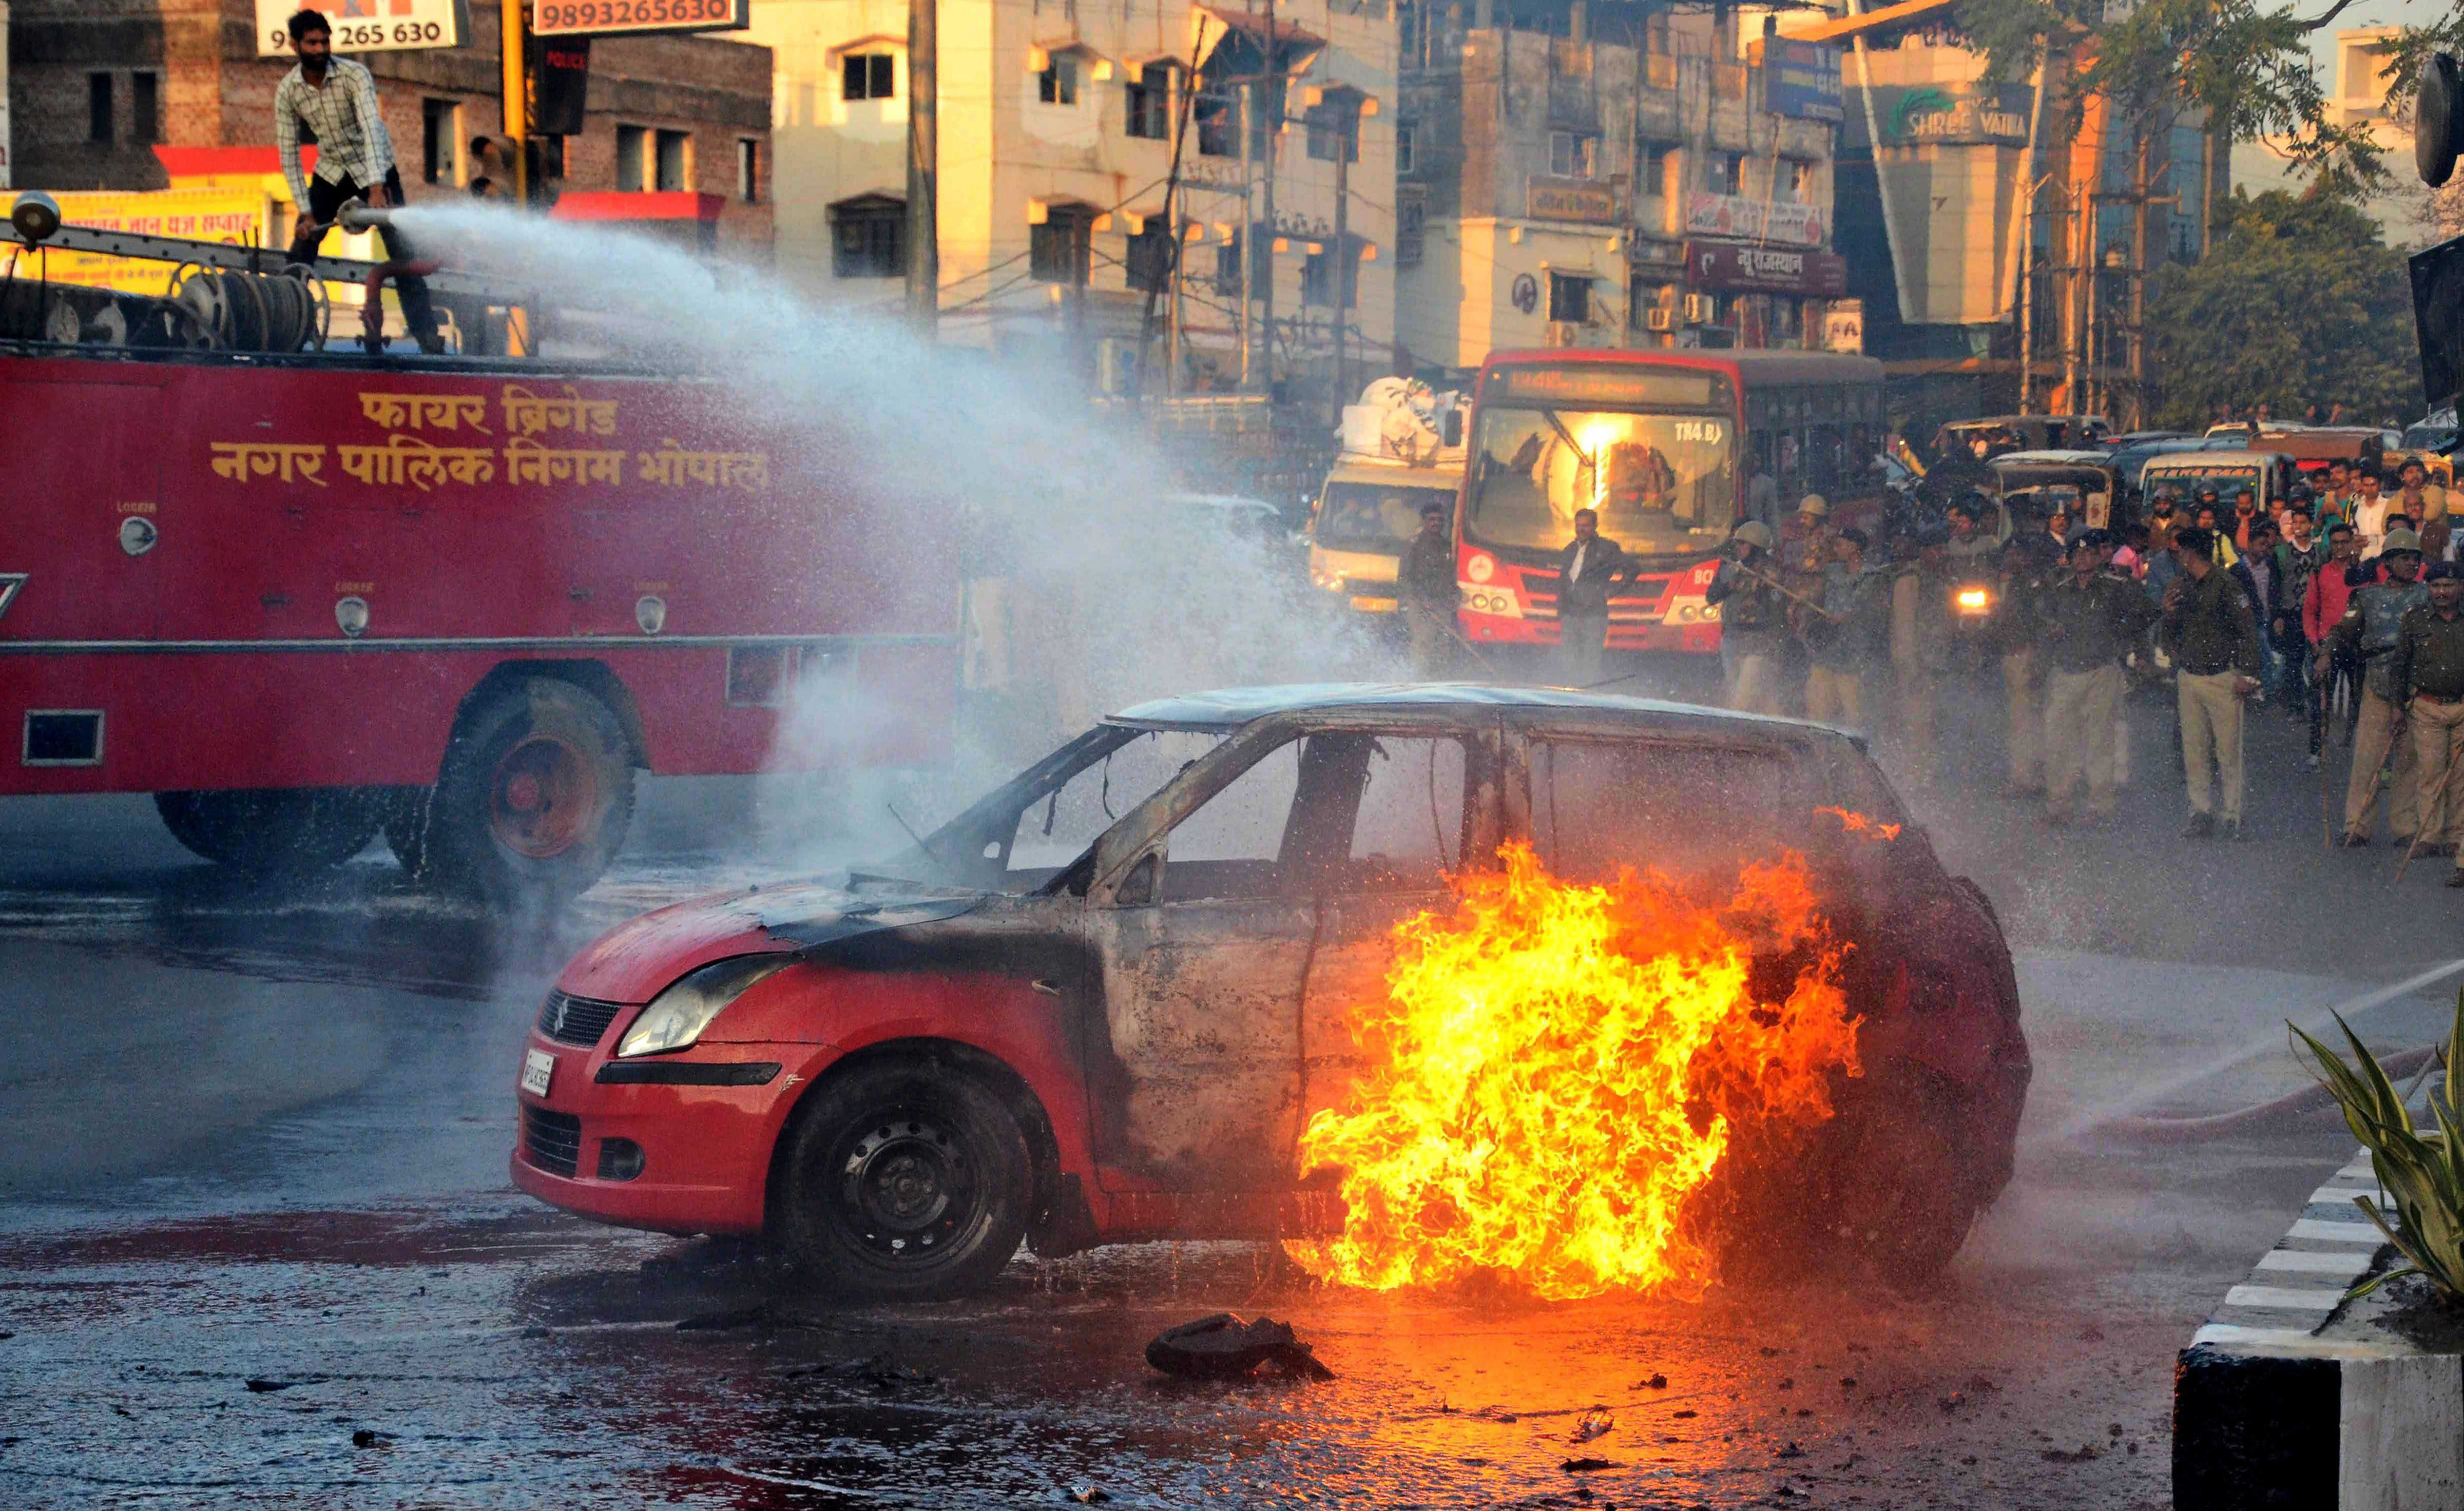 Firefighters in Bhopal try to douse the flames of a car Rajput groups set on fire protesting against Padmaavat. (Credit: PTI)